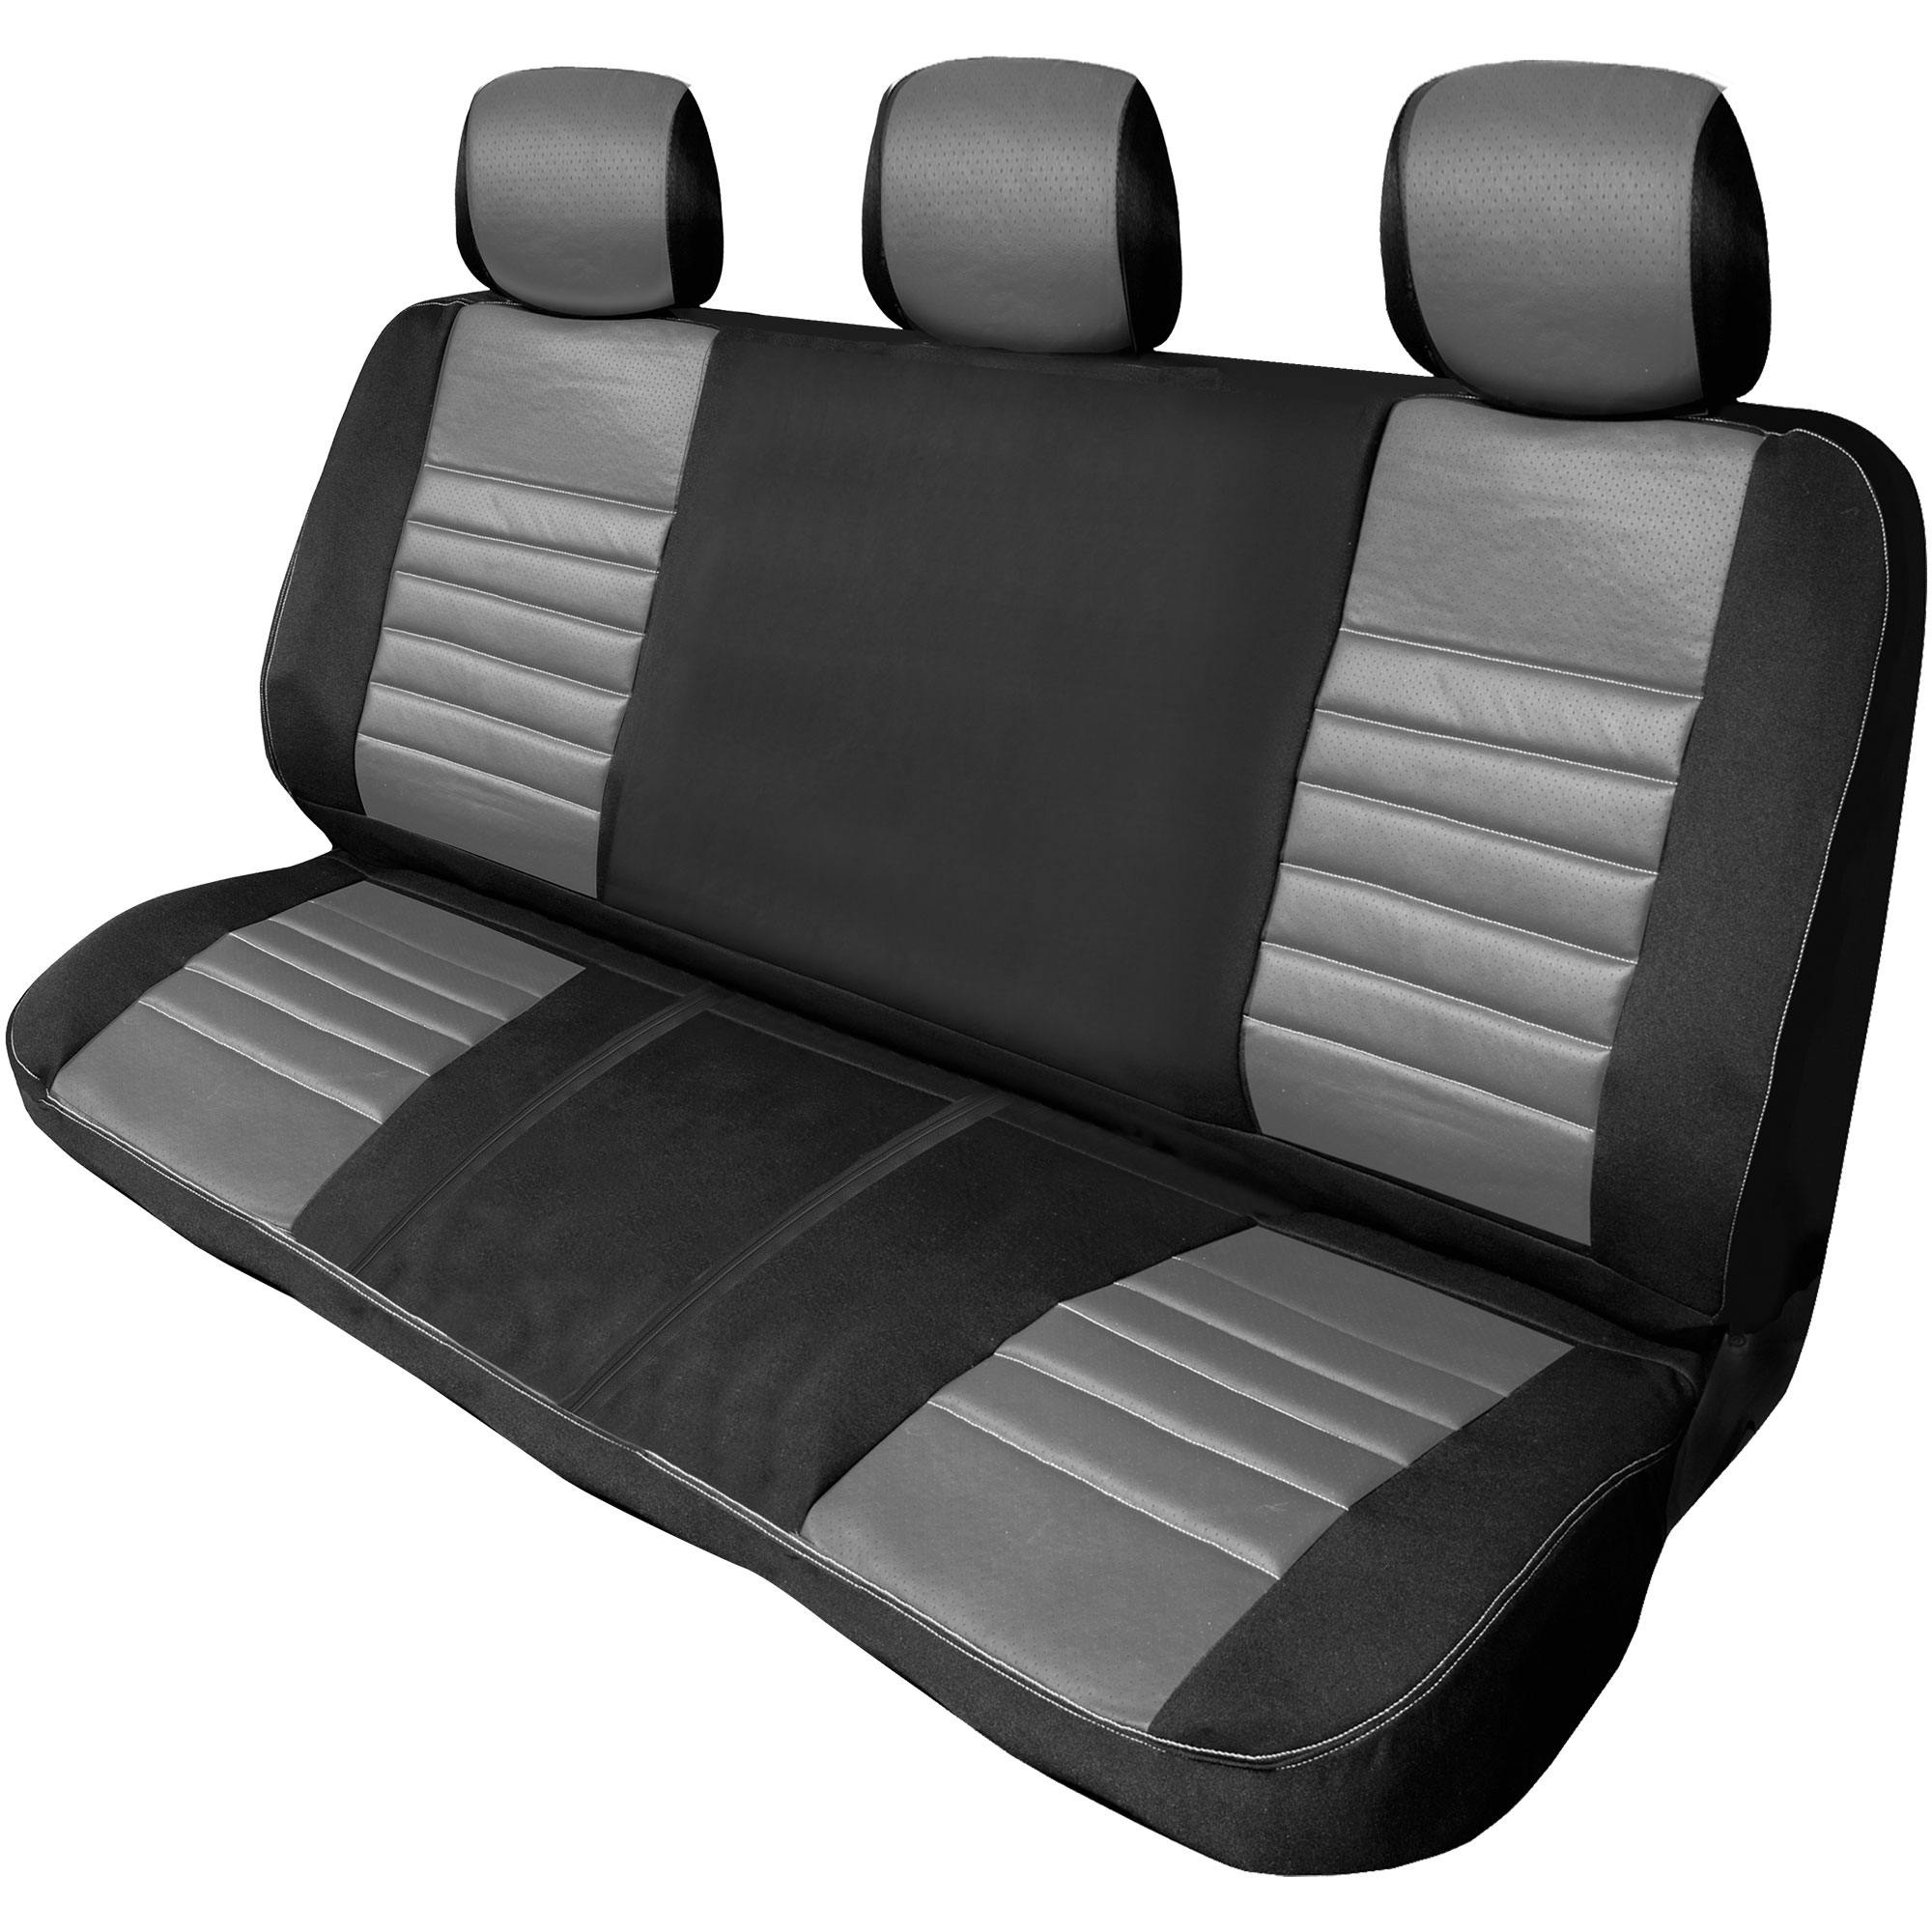 Phantom Truck Rear Seat Cover  Auto Seat Covers  Masque